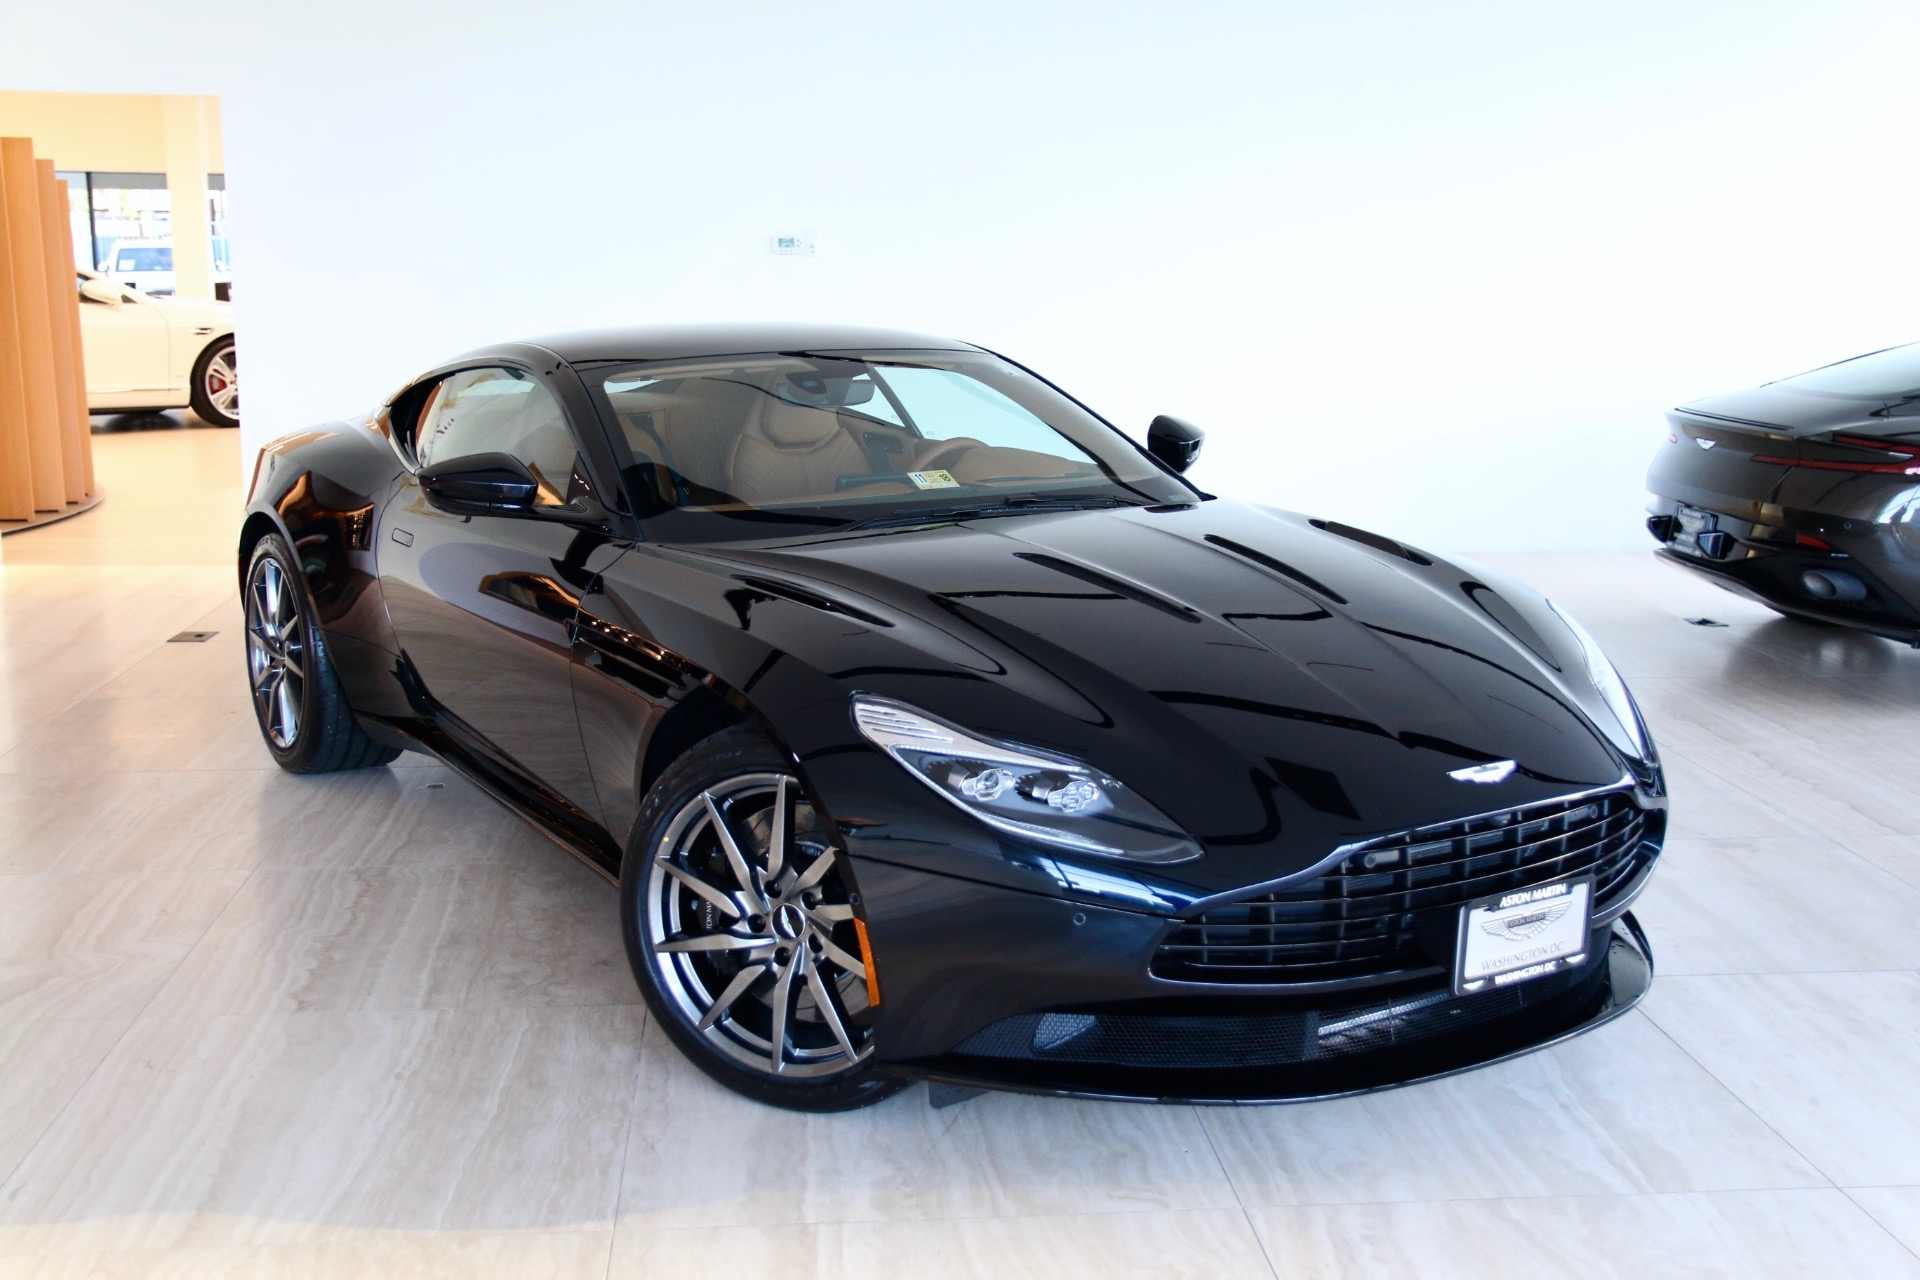 2018 Aston Martin Db11 V12 Stock 8nl03158 For Sale Near Vienna Va